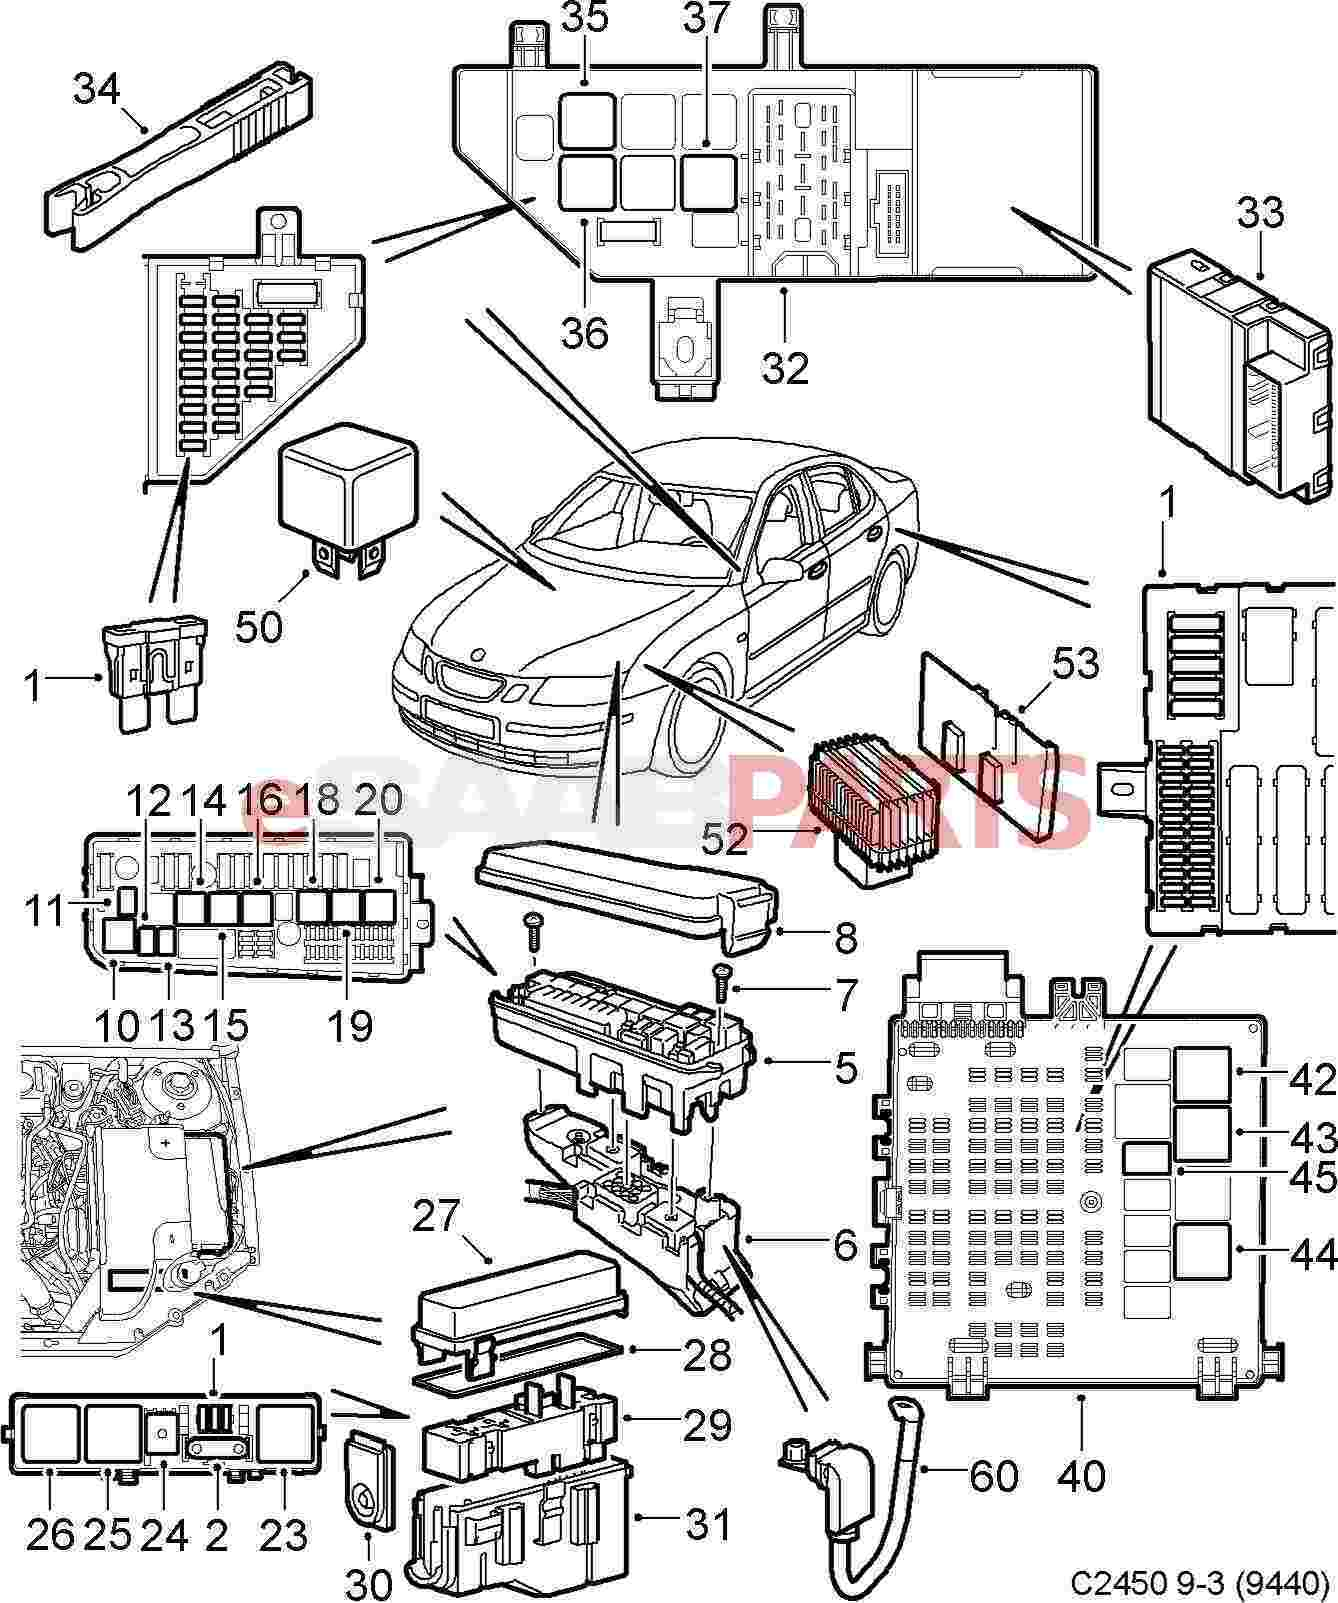 [DIAGRAM] 2003 Saab 9 3 Wiring Diagram FULL Version HD